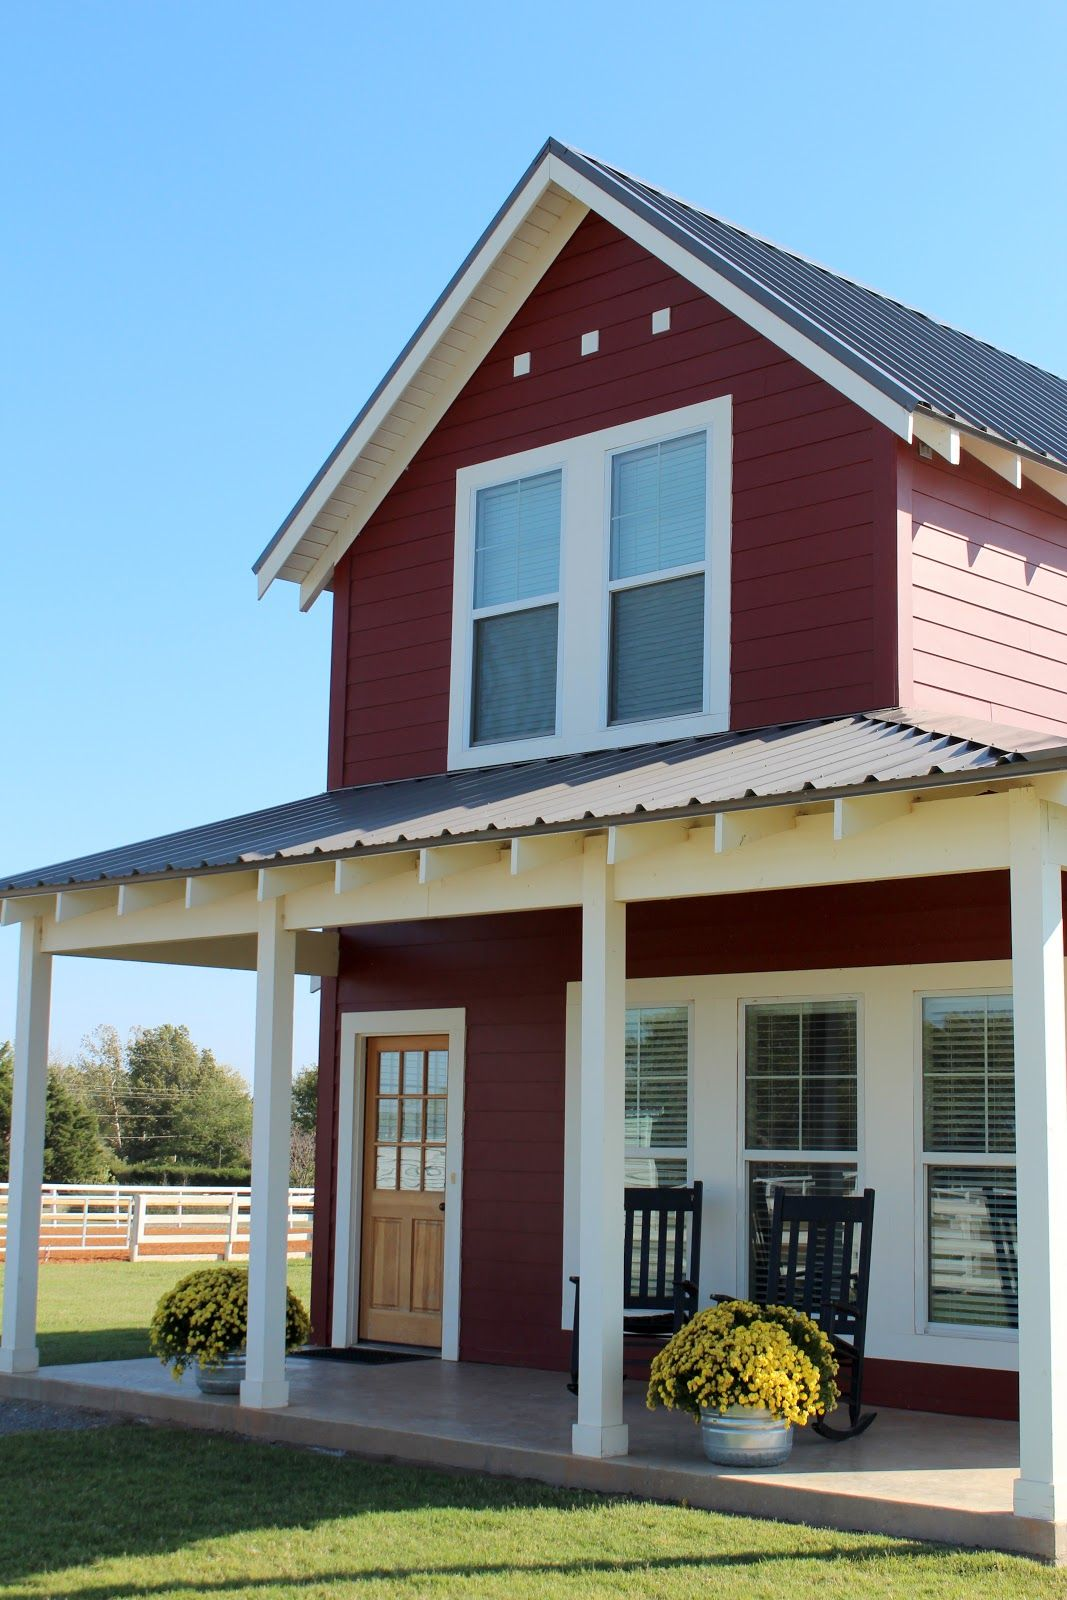 5 Tiny House Designs 2019 Plan Designs Around The World: Red Farmhouse, House Colors, Red Houses